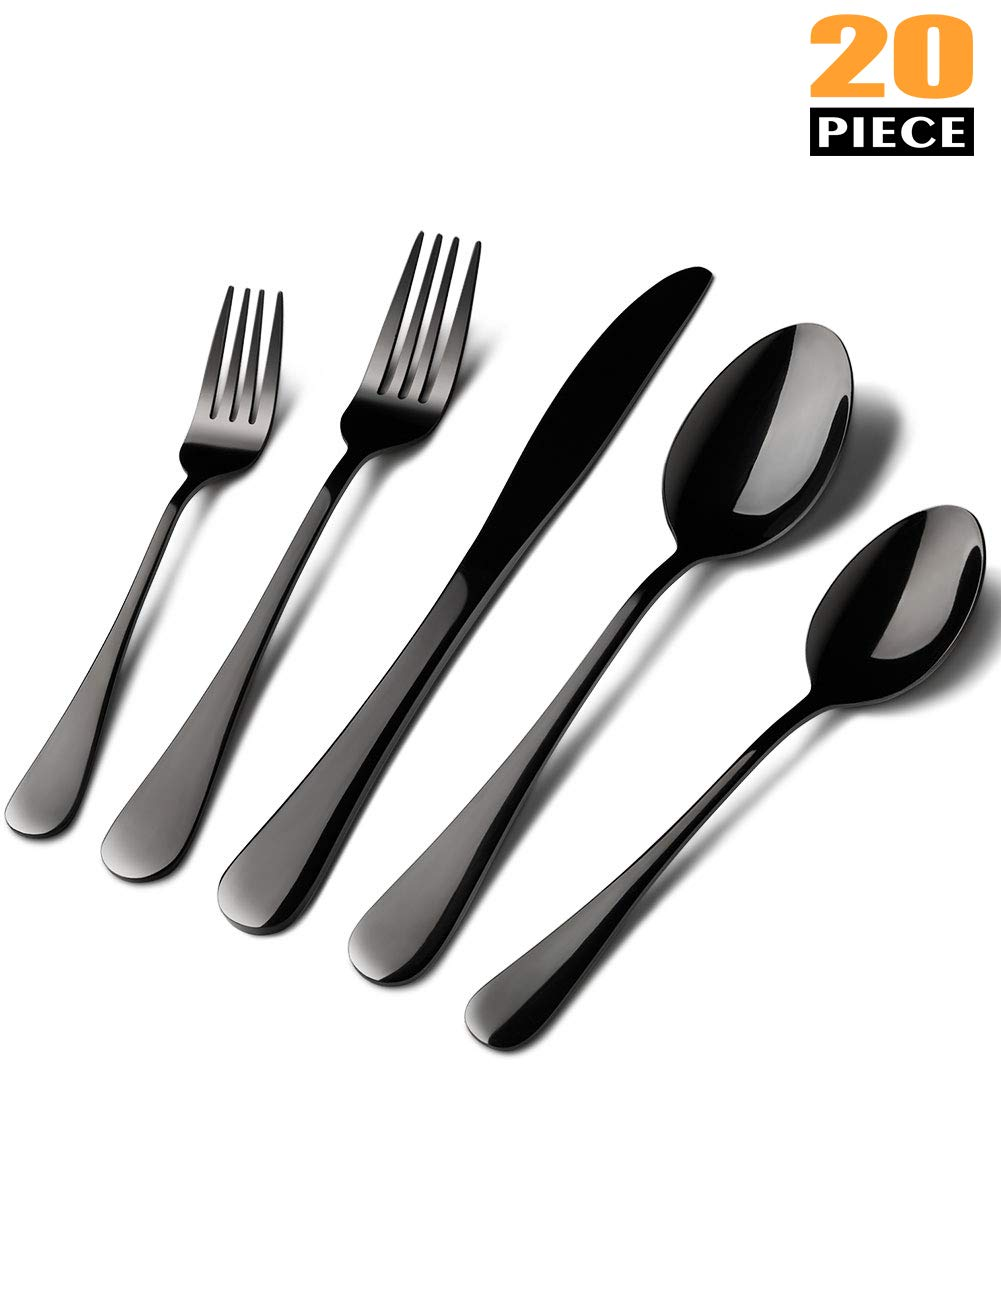 Black Matte Silverware Set, 20 Pieces Set Stainless Steel Flatware Utensils Cutlery Dinnerware Tableware Set, Steak Knife and Fork And Spoon Set with Gift Box Package,Service For 4 (Black)